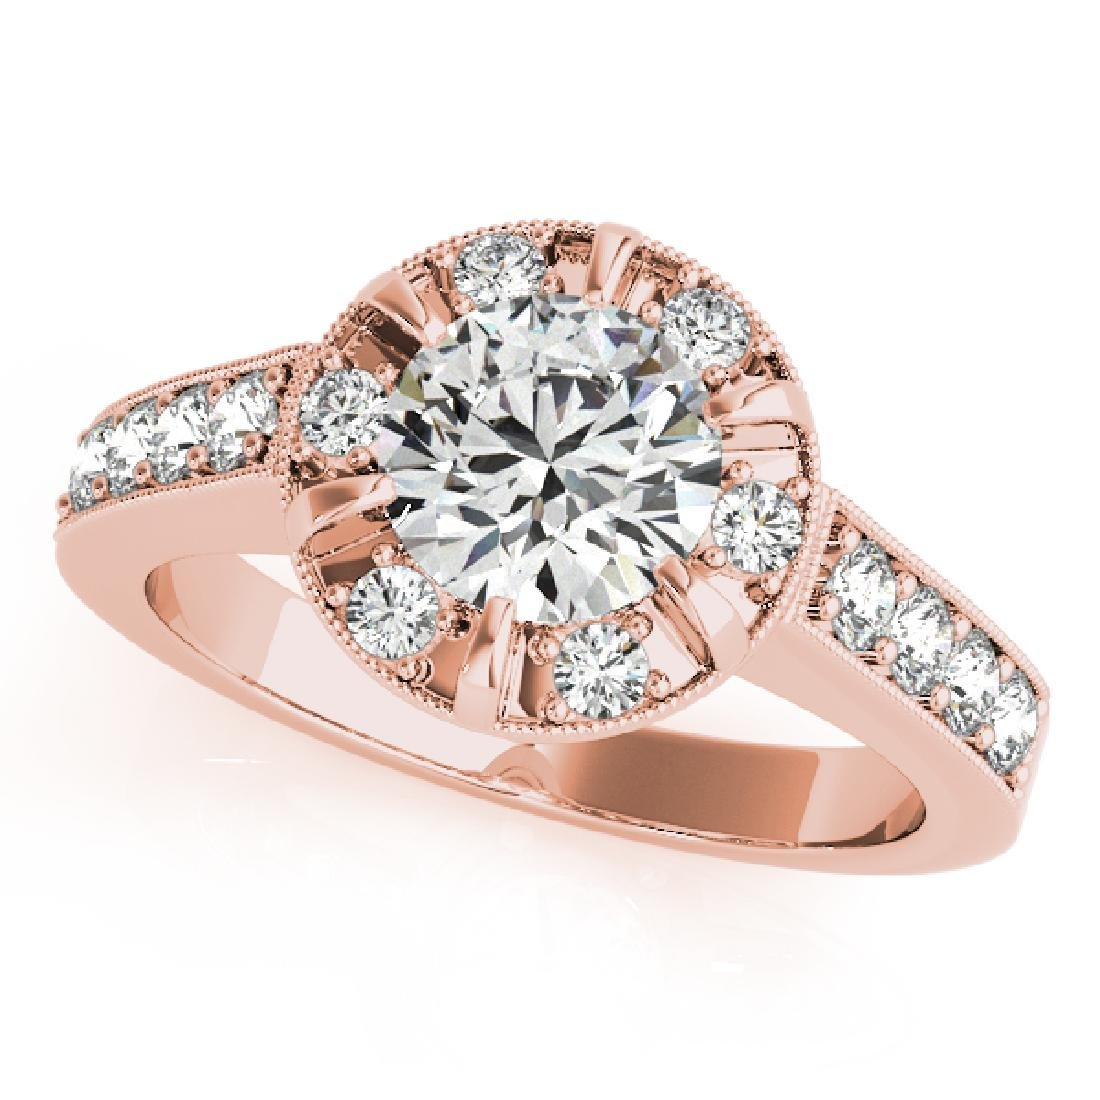 CERTIFIED 18K ROSE GOLD 1.25 CT G-H/VS-SI1 DIAMOND HALO